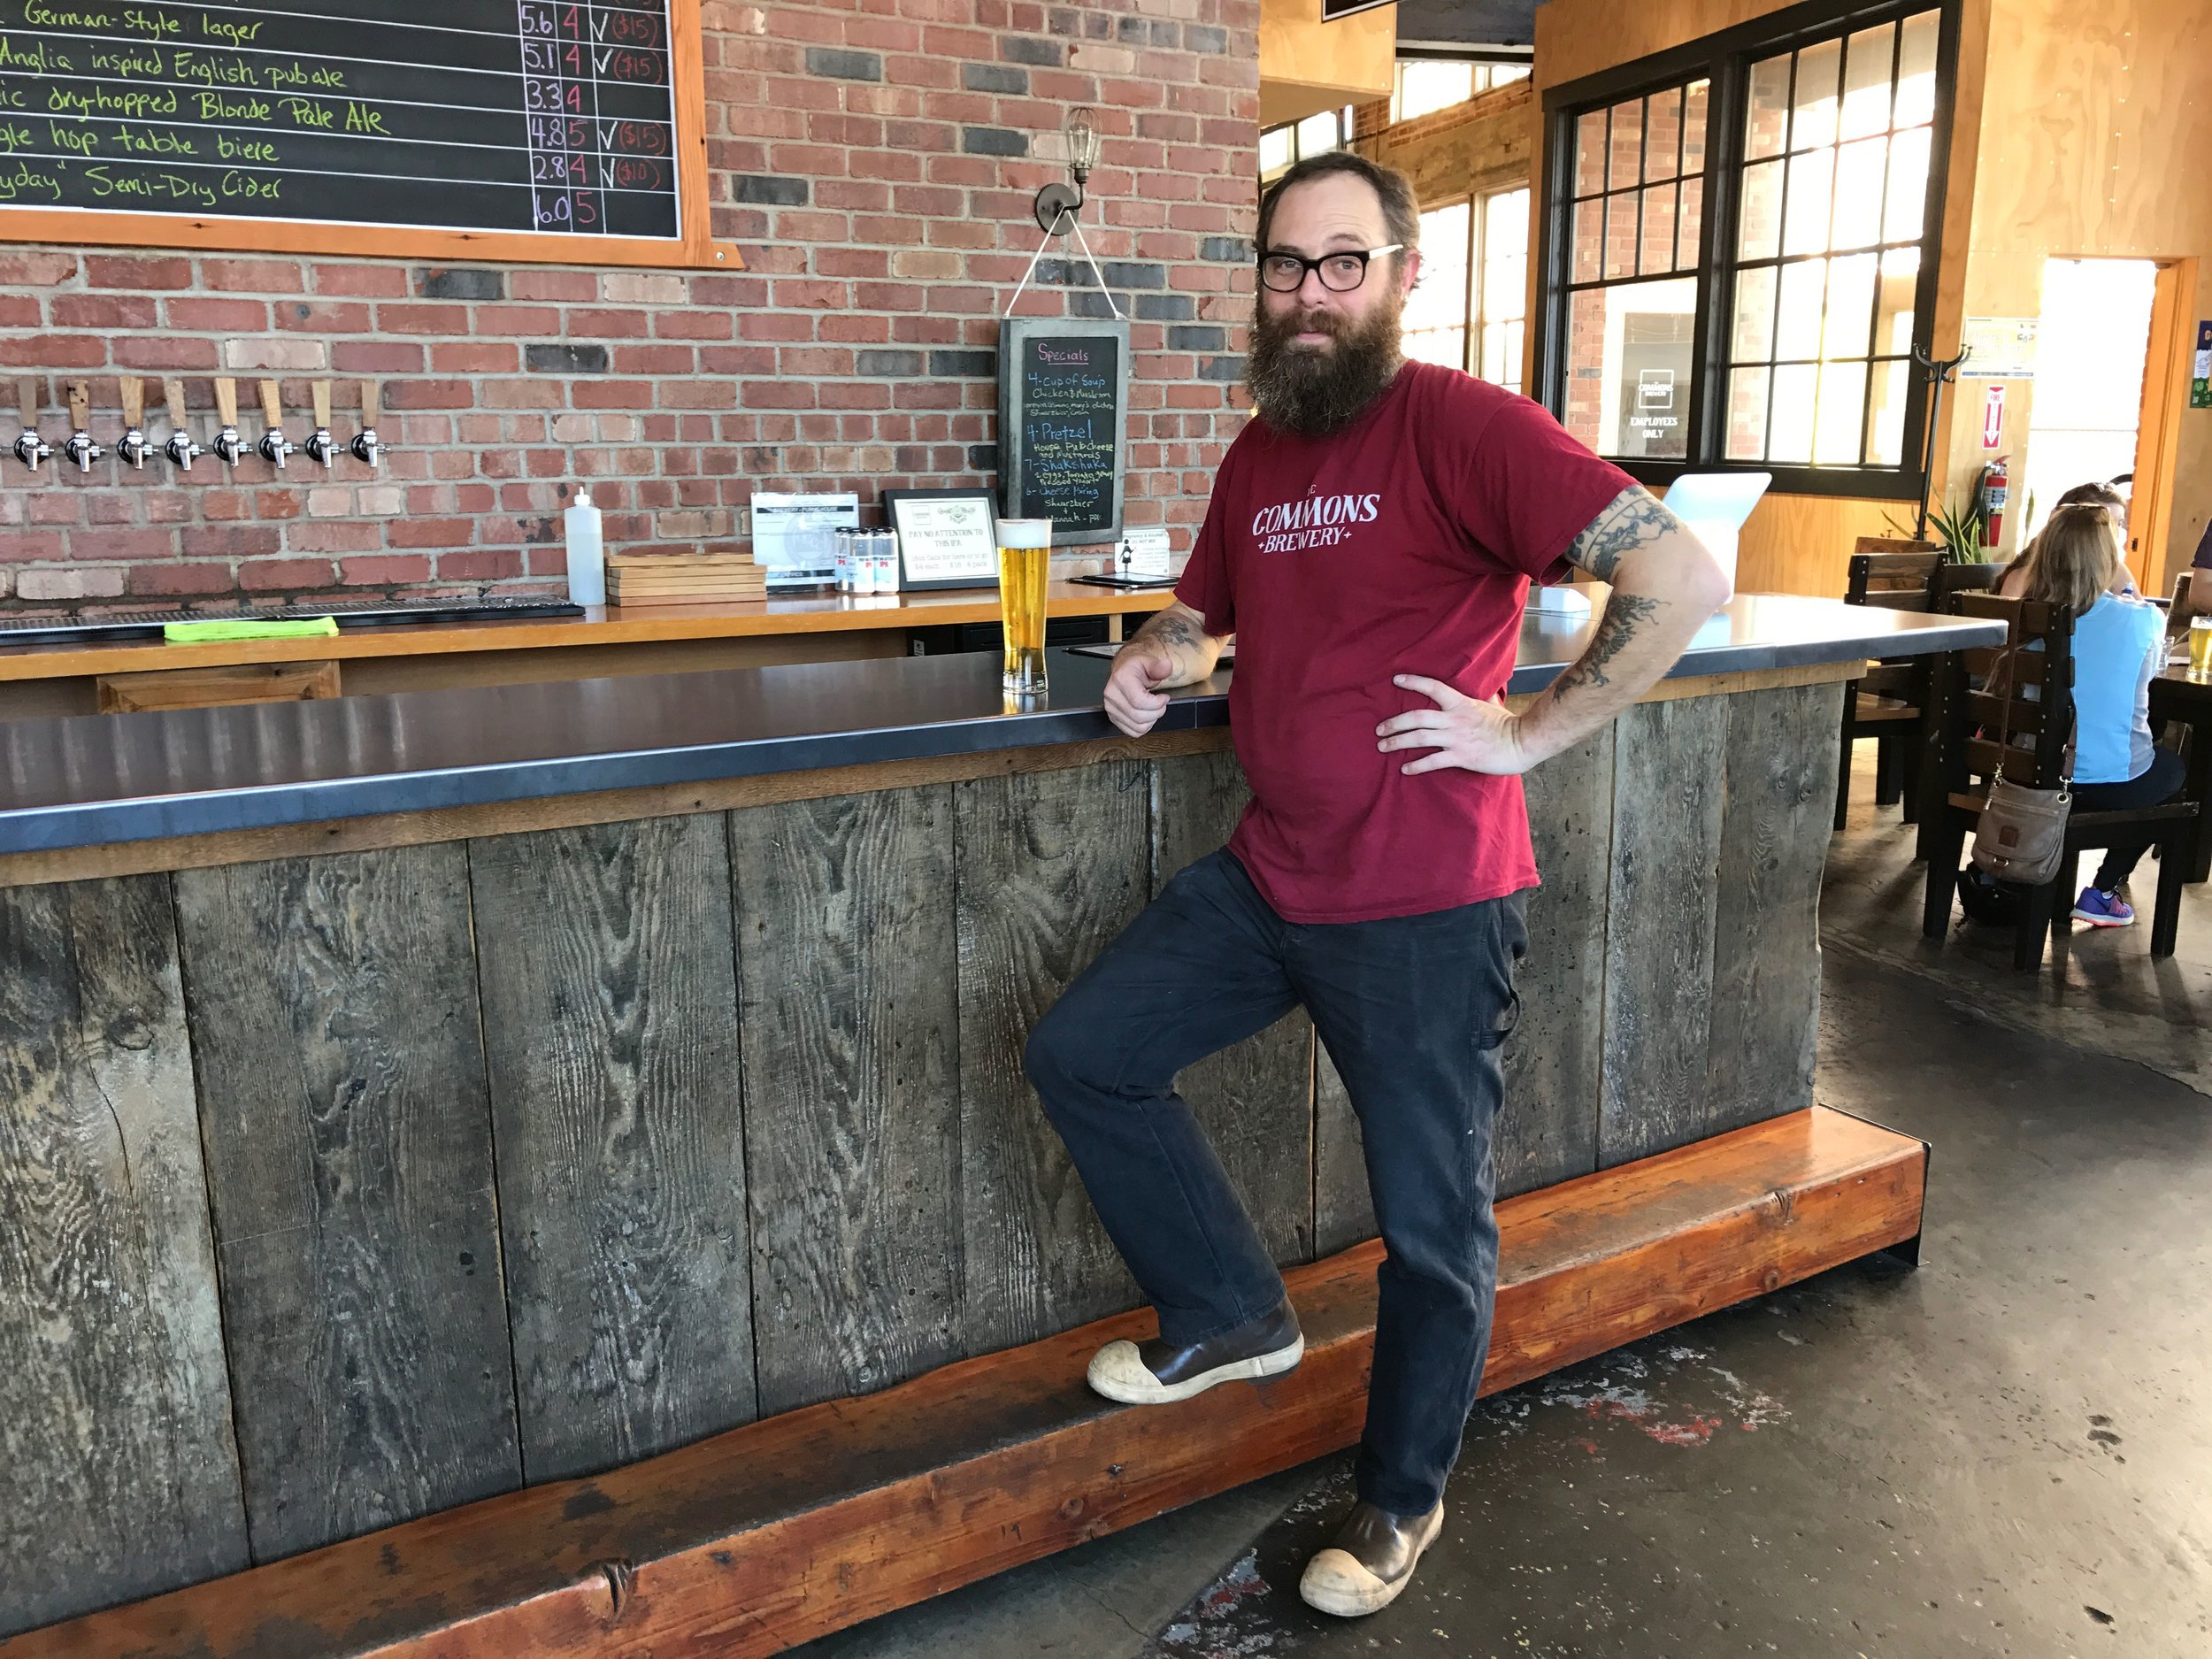 Sean Burke doing his best Captain Morgan pose at the Commons Brewery.